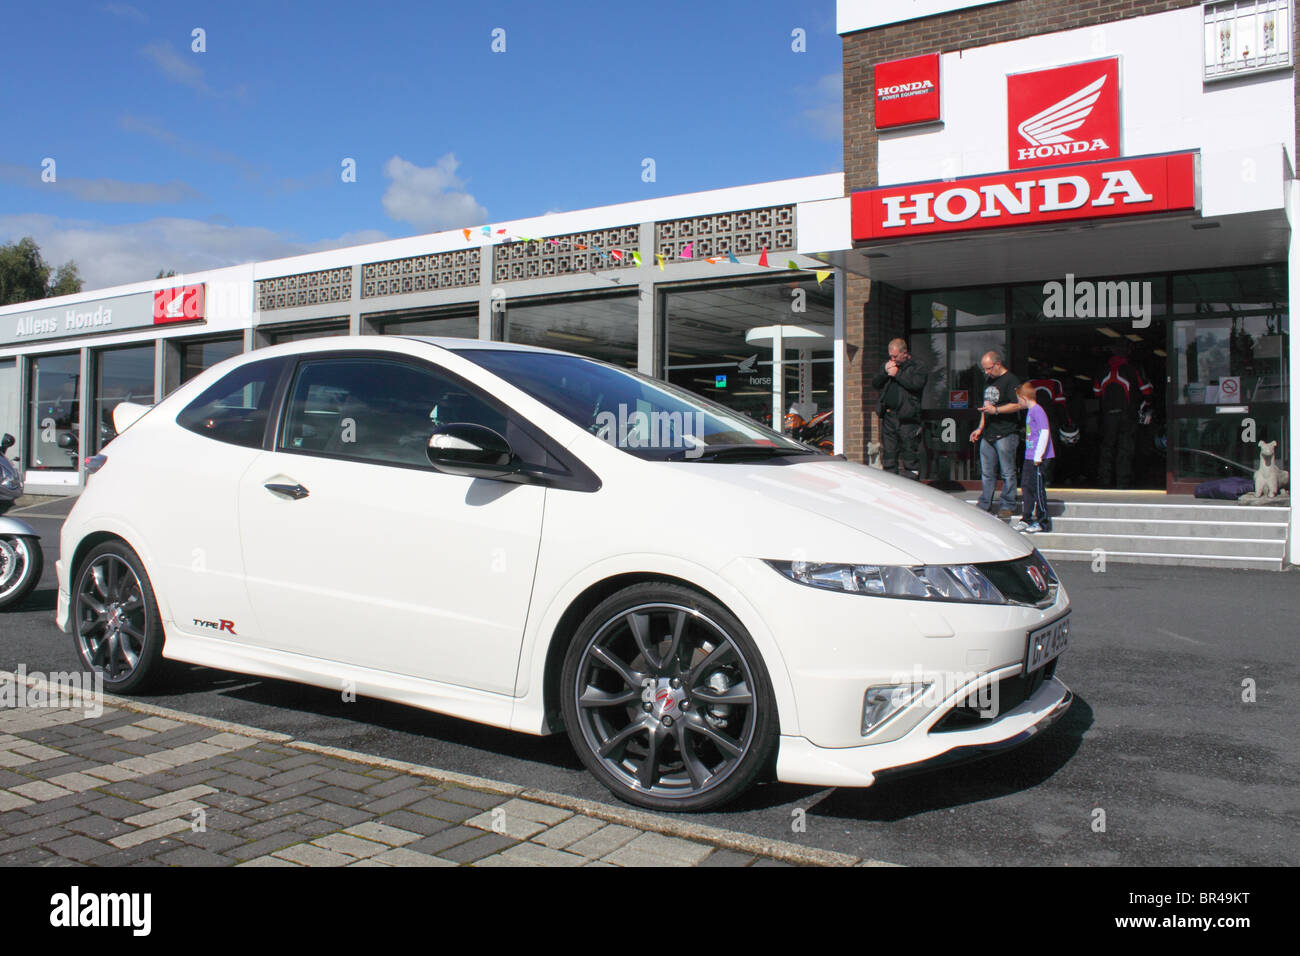 Honda civic type r stock photos honda civic type r stock for Honda civic dealership